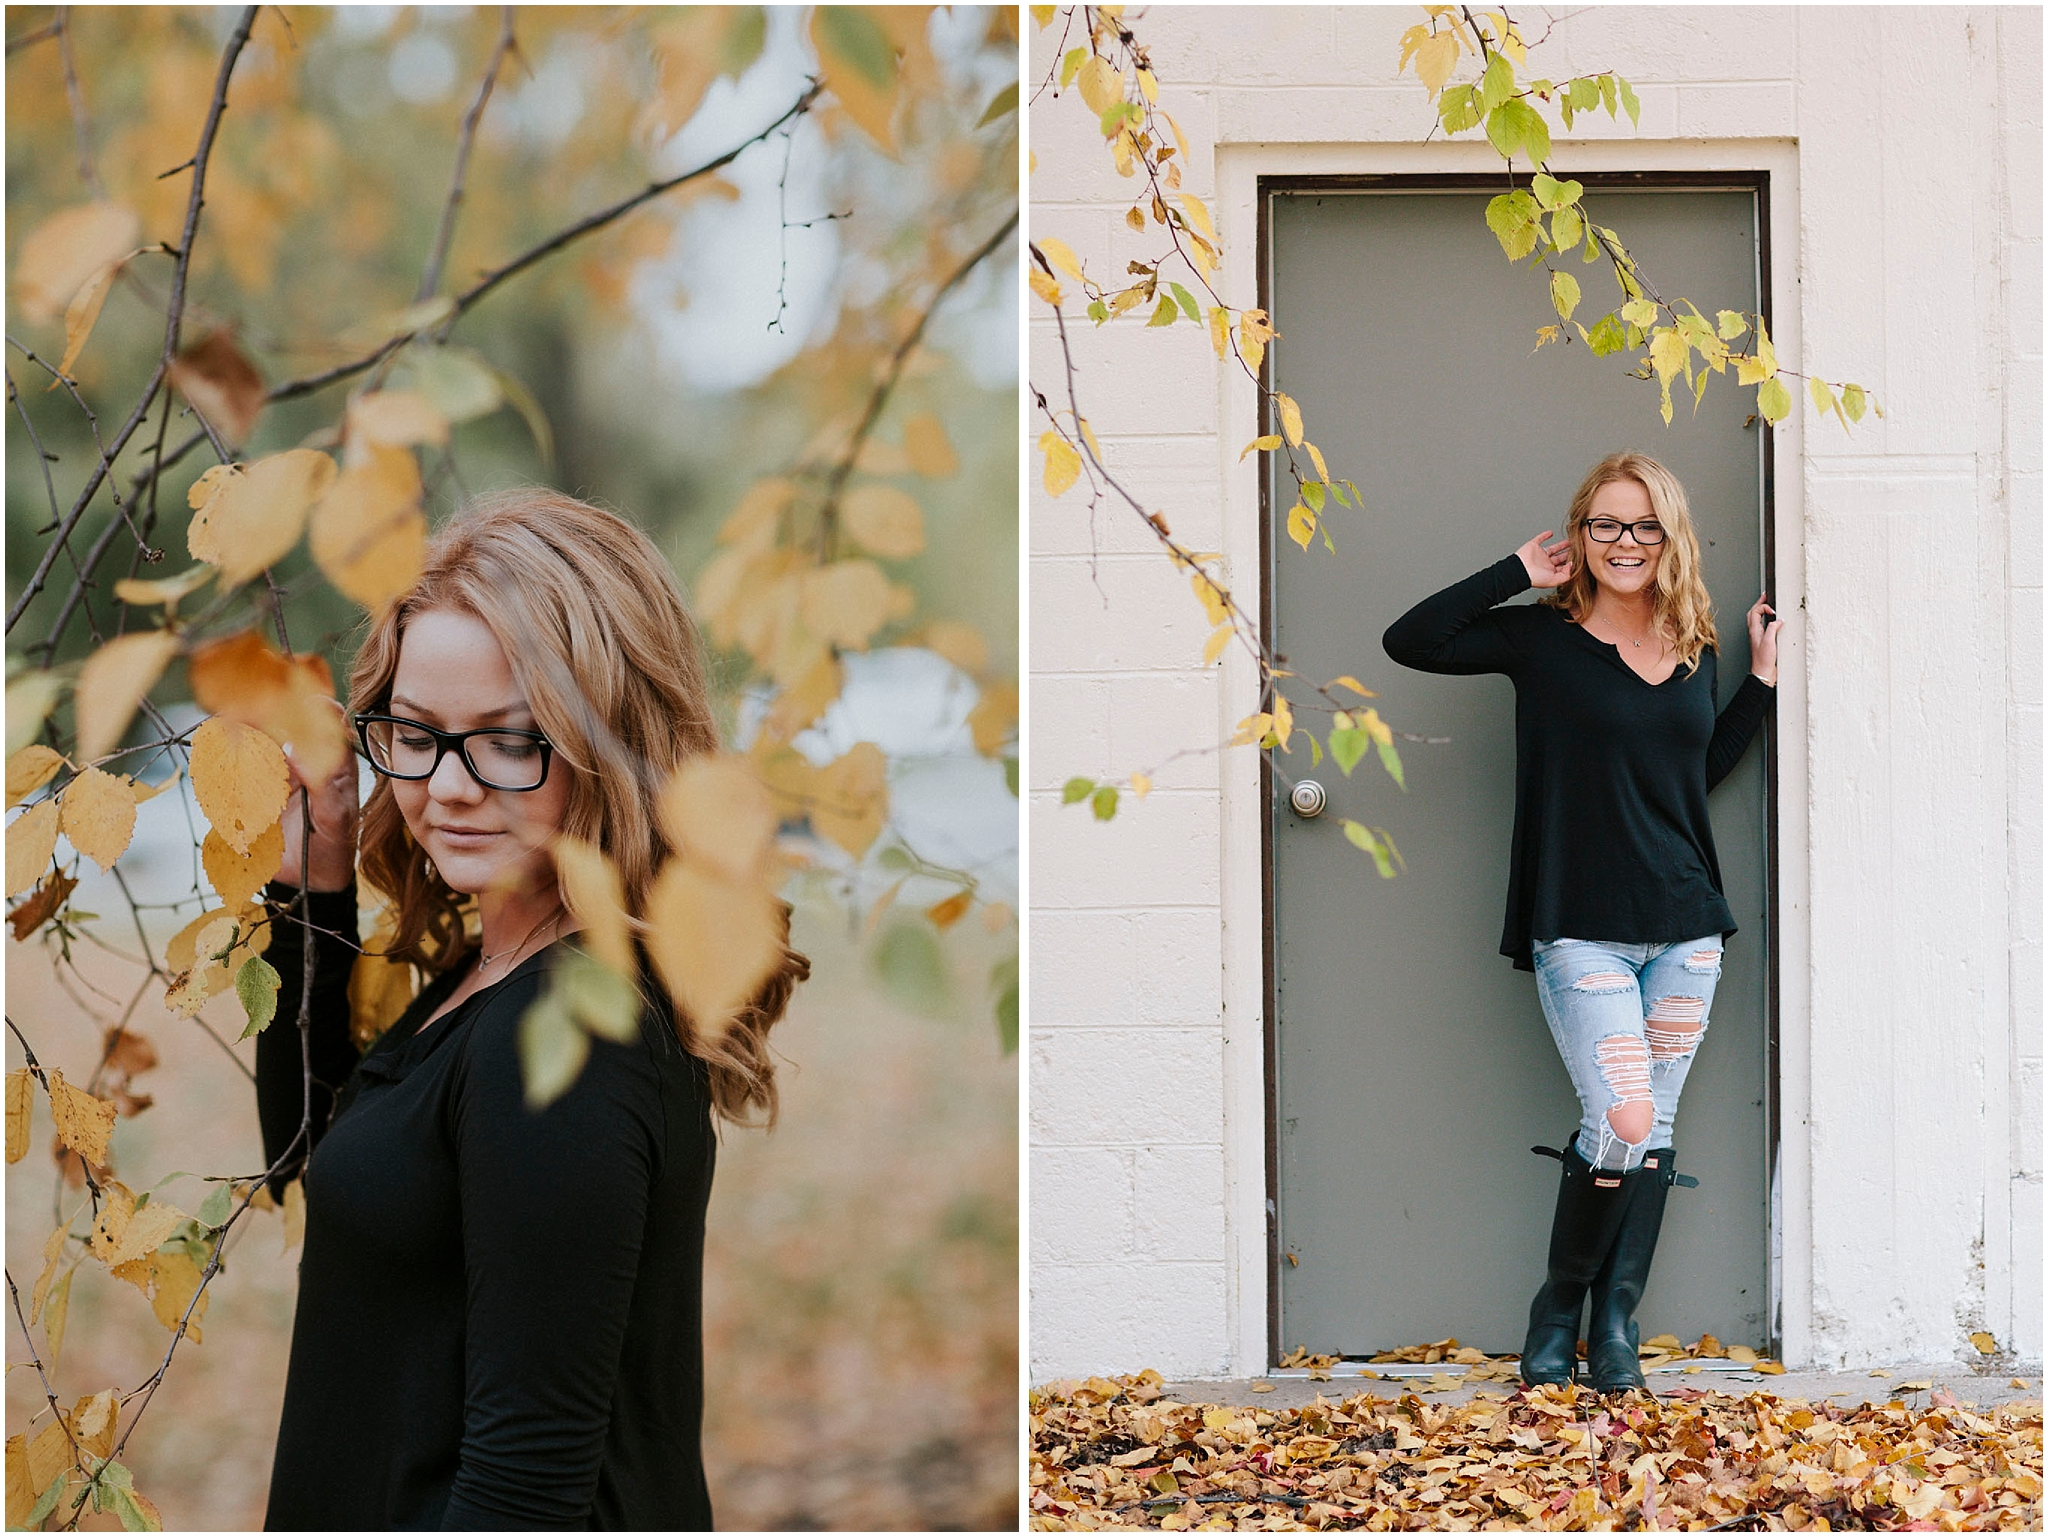 Traverse City Senior Portrait photography